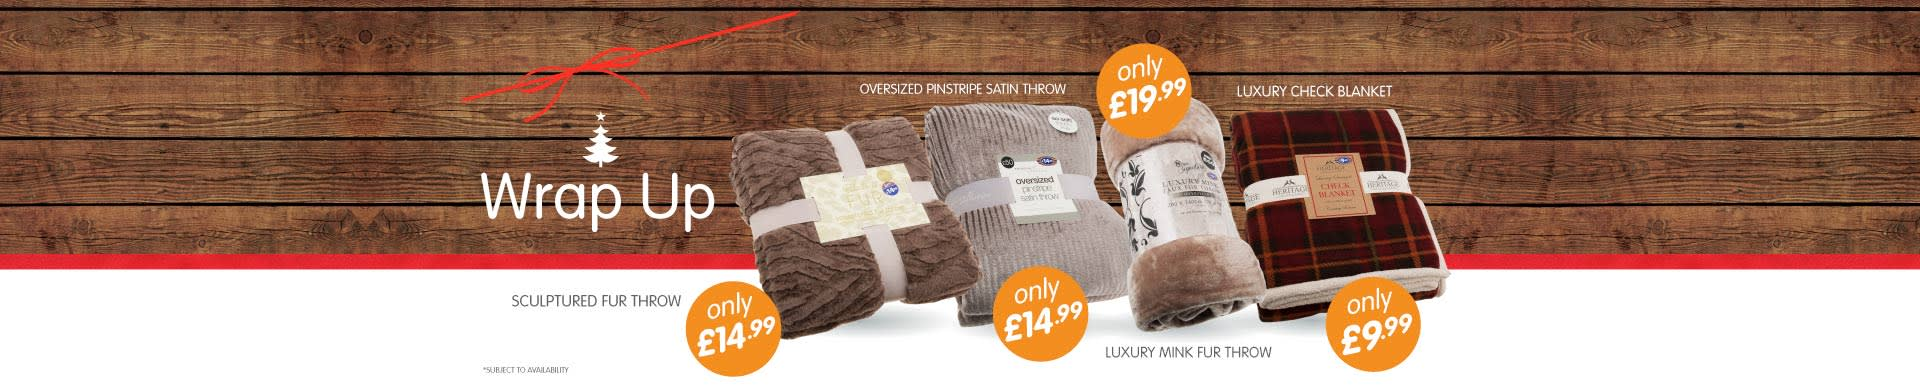 Wrap up a great gift this Christmas with our throw collection from B&M Stores.